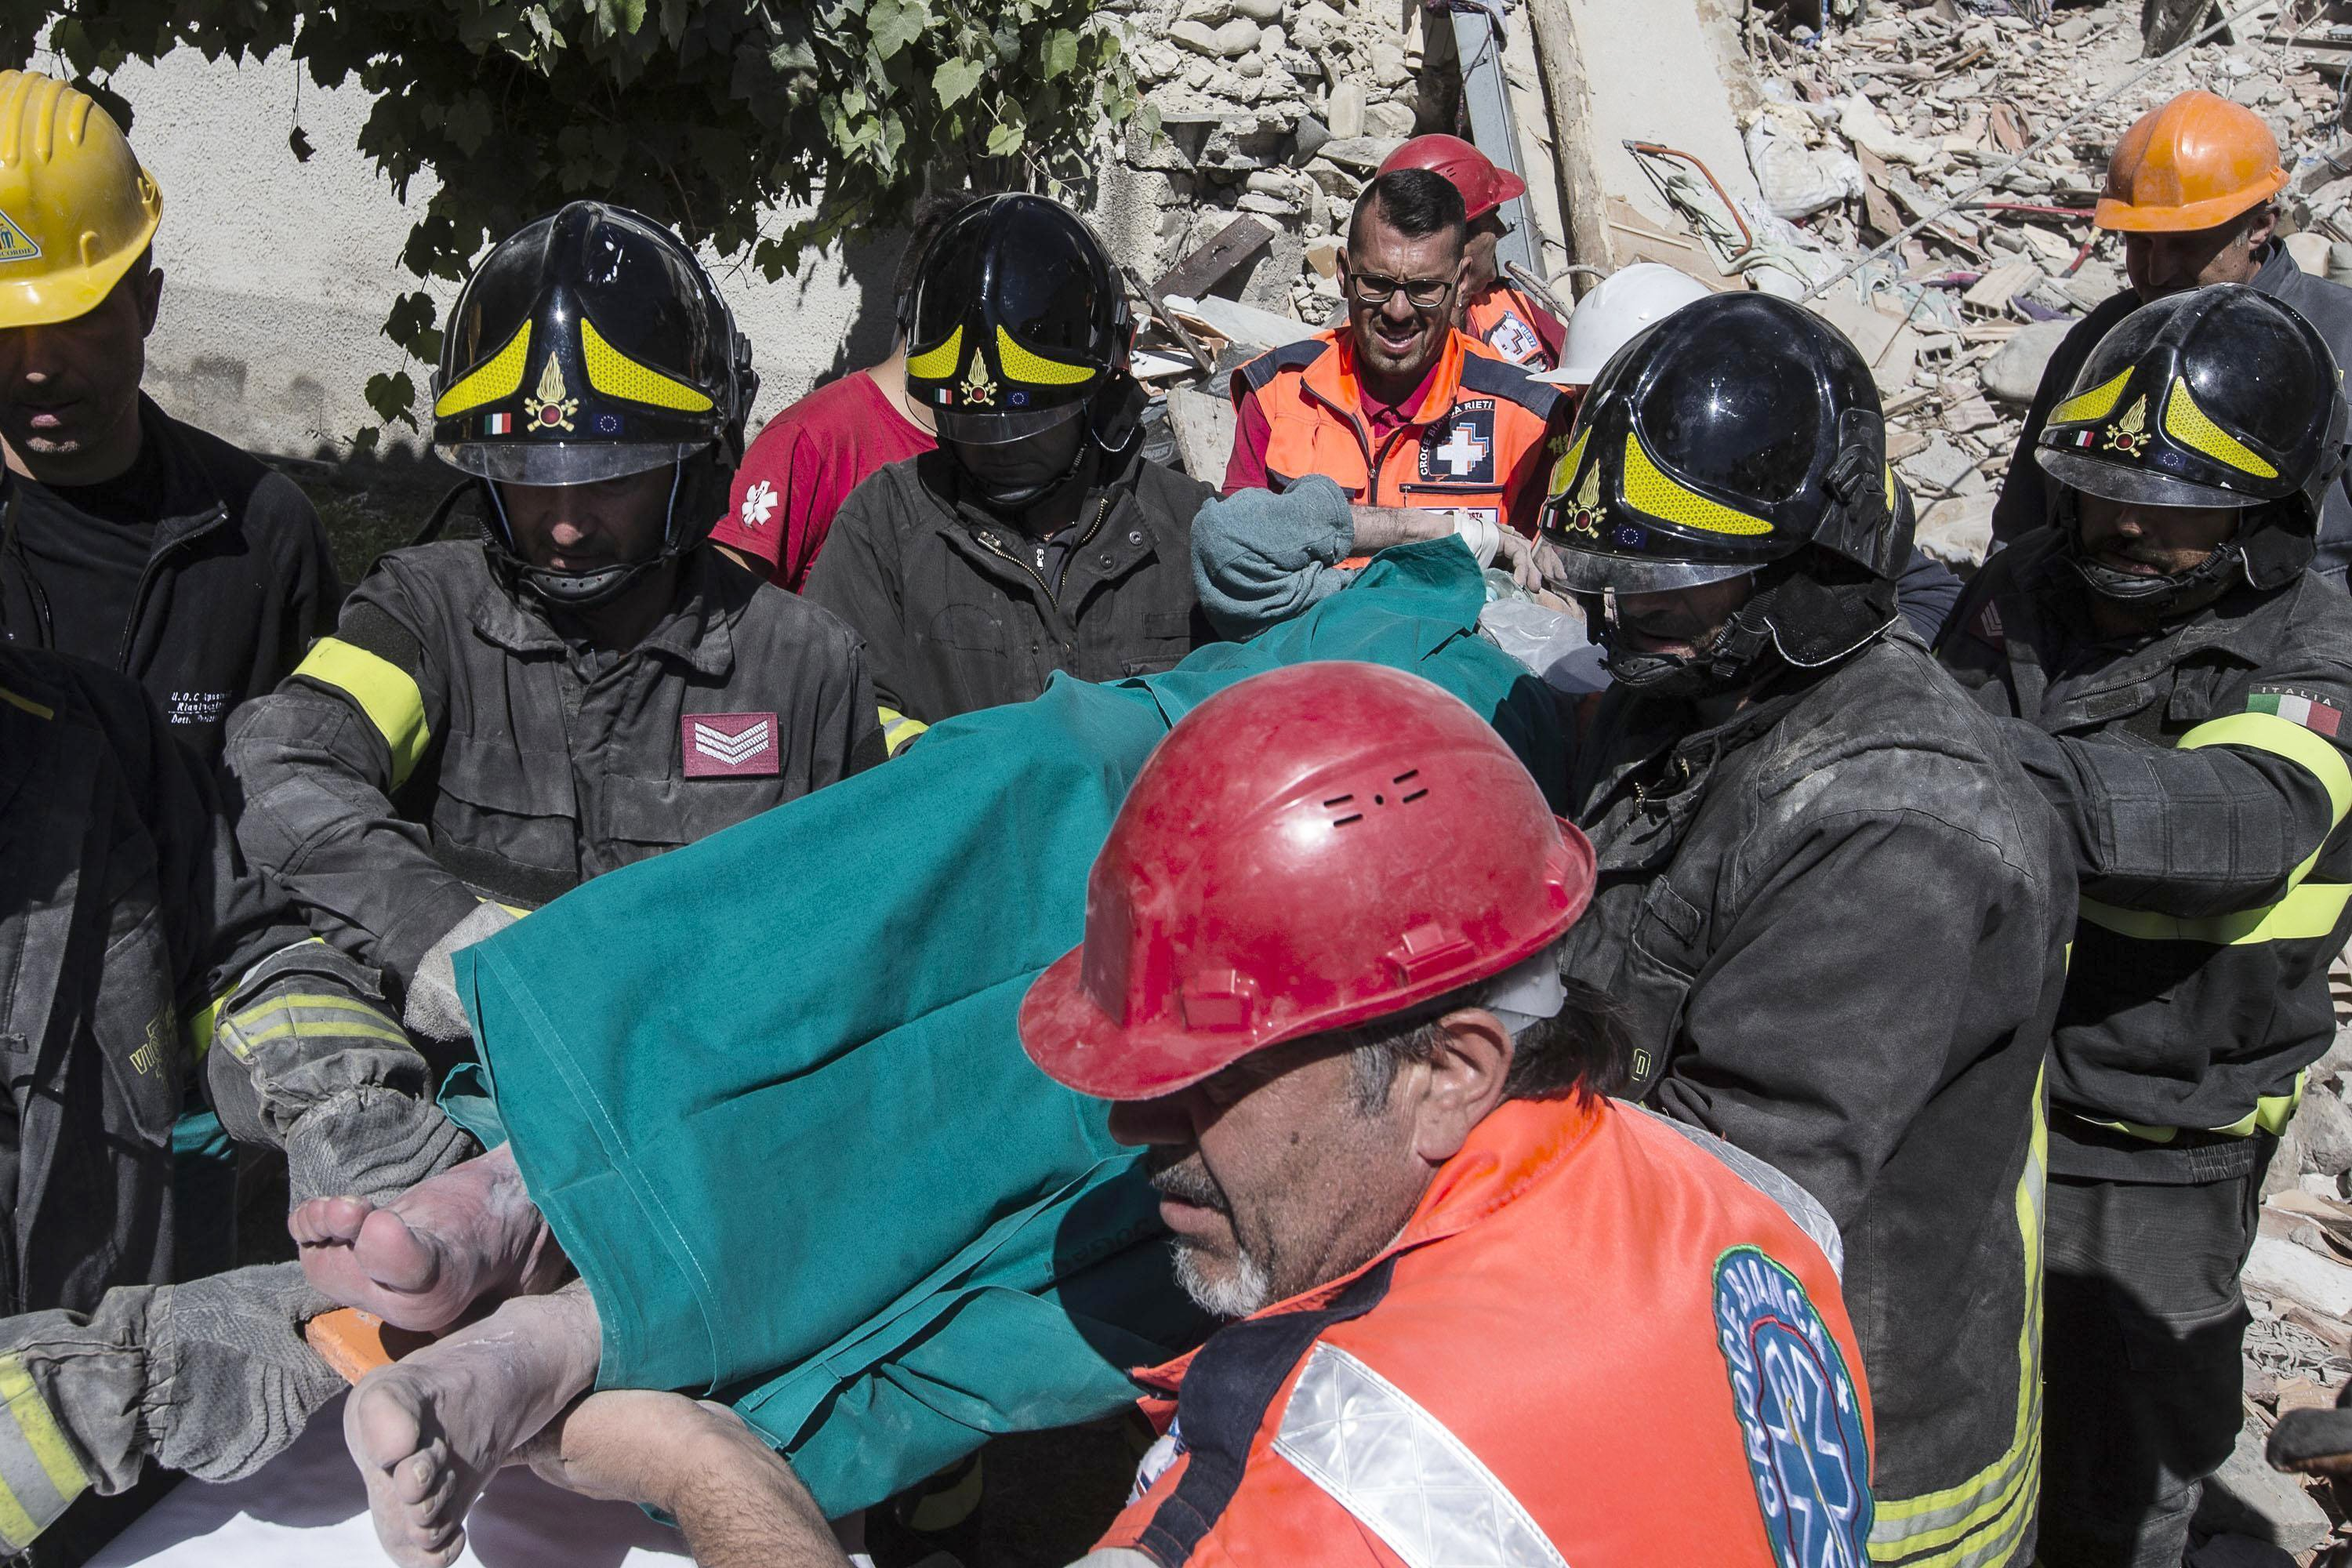 Rescuers search for survivors in Italy quake that killed 159